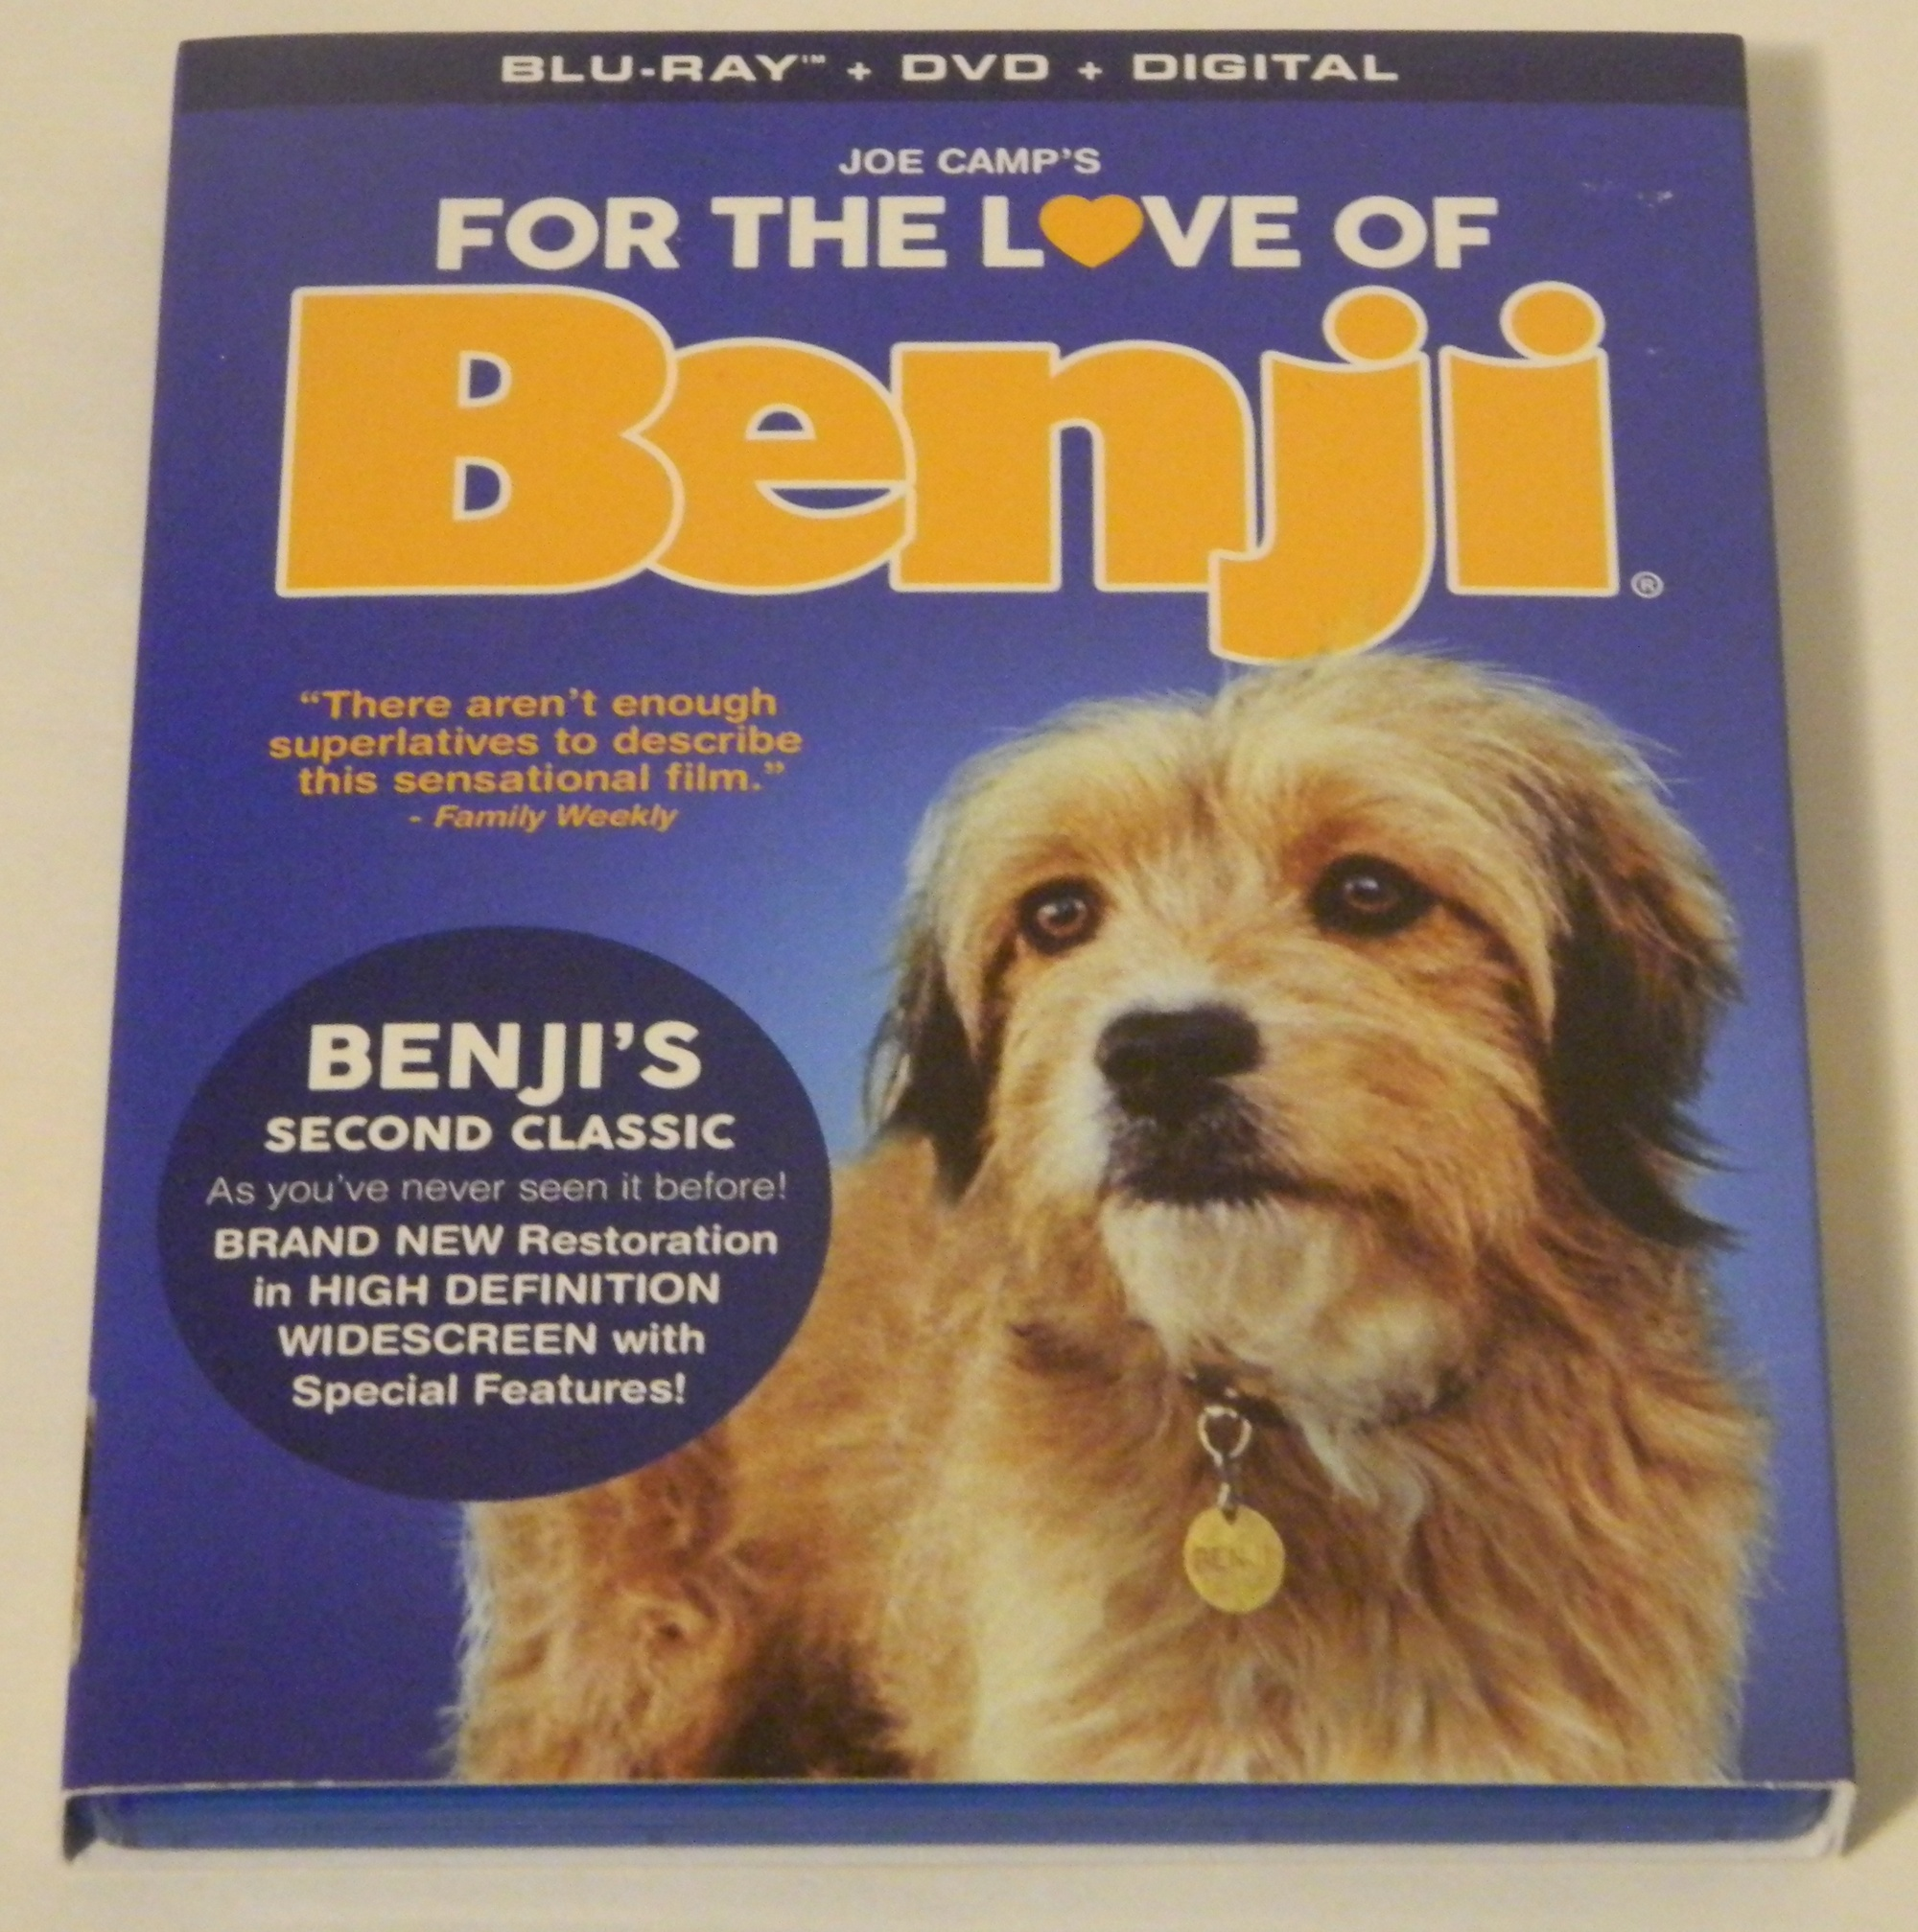 For the Love of Benji Blu-ray